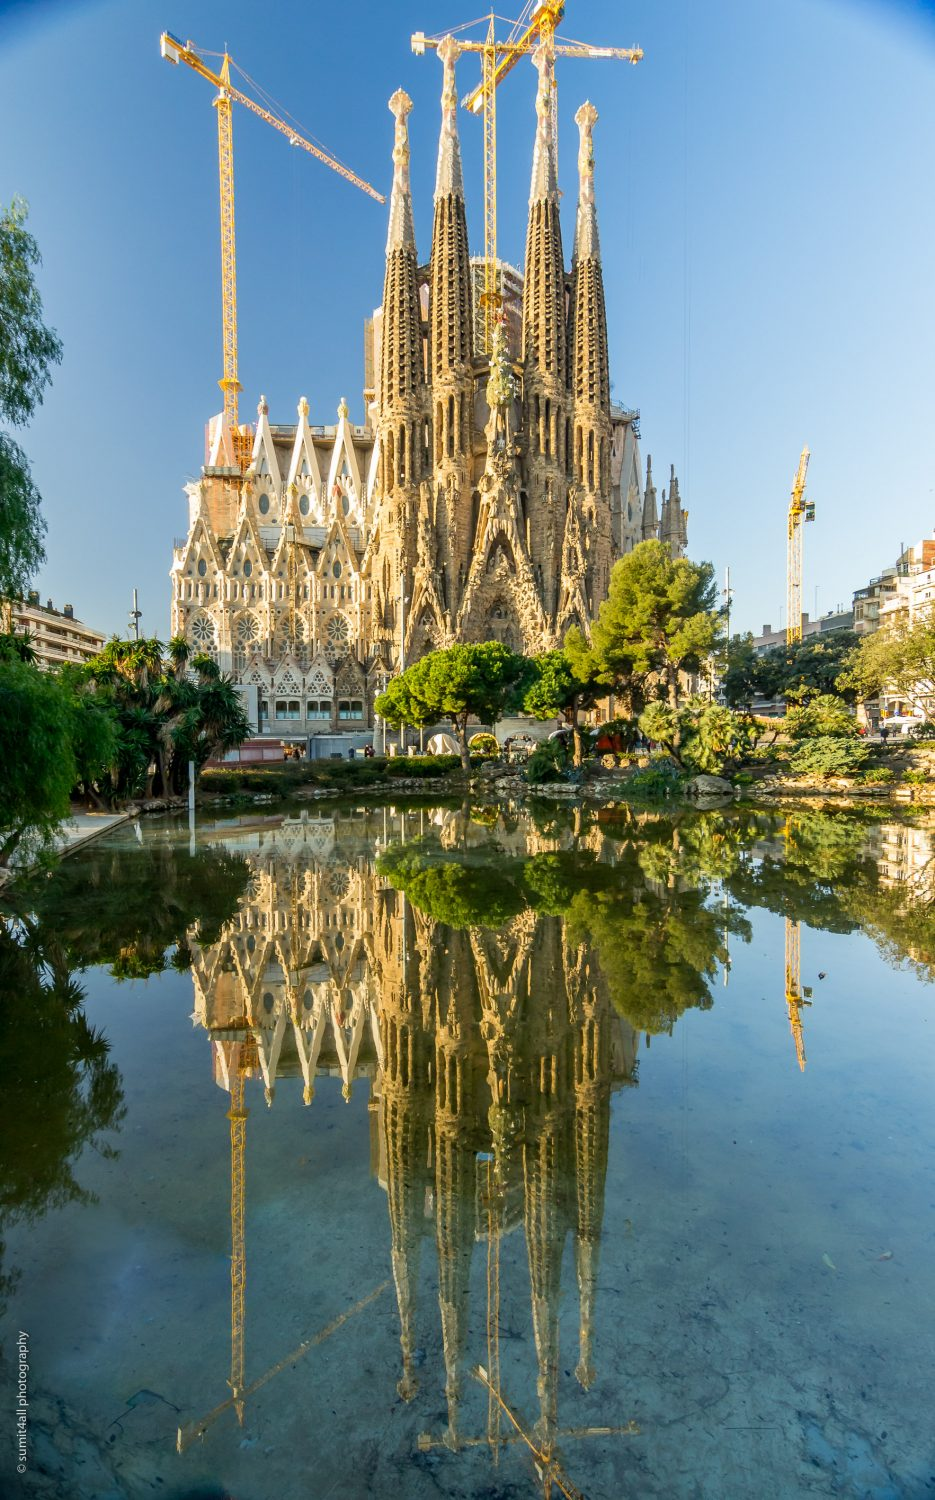 The reflection of the Sagrada Familia in the small pond in front